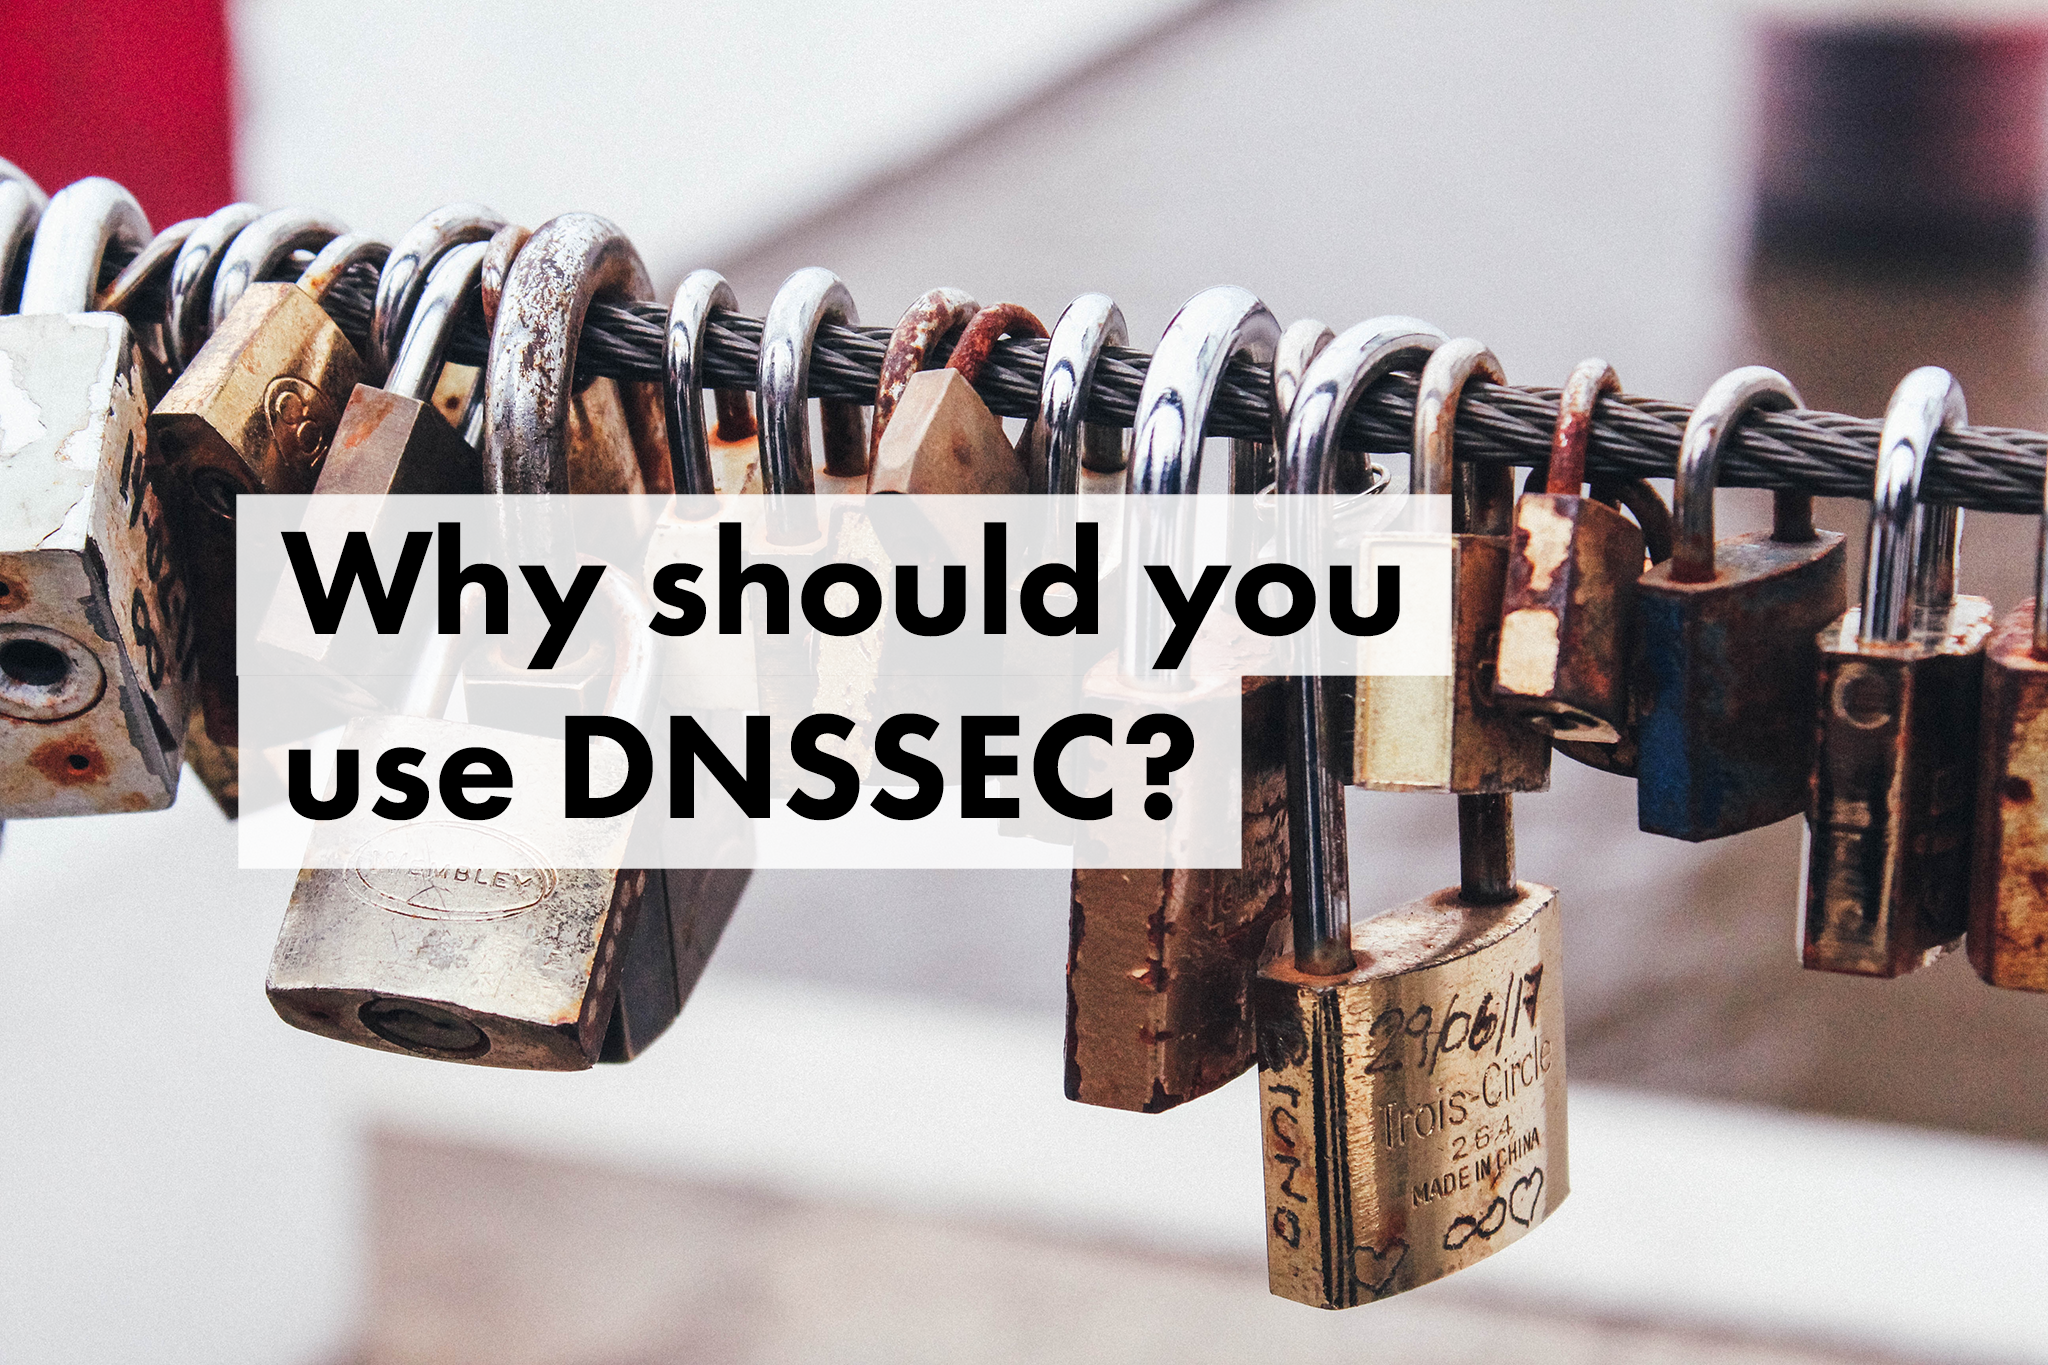 Why should you use DNSSEC?